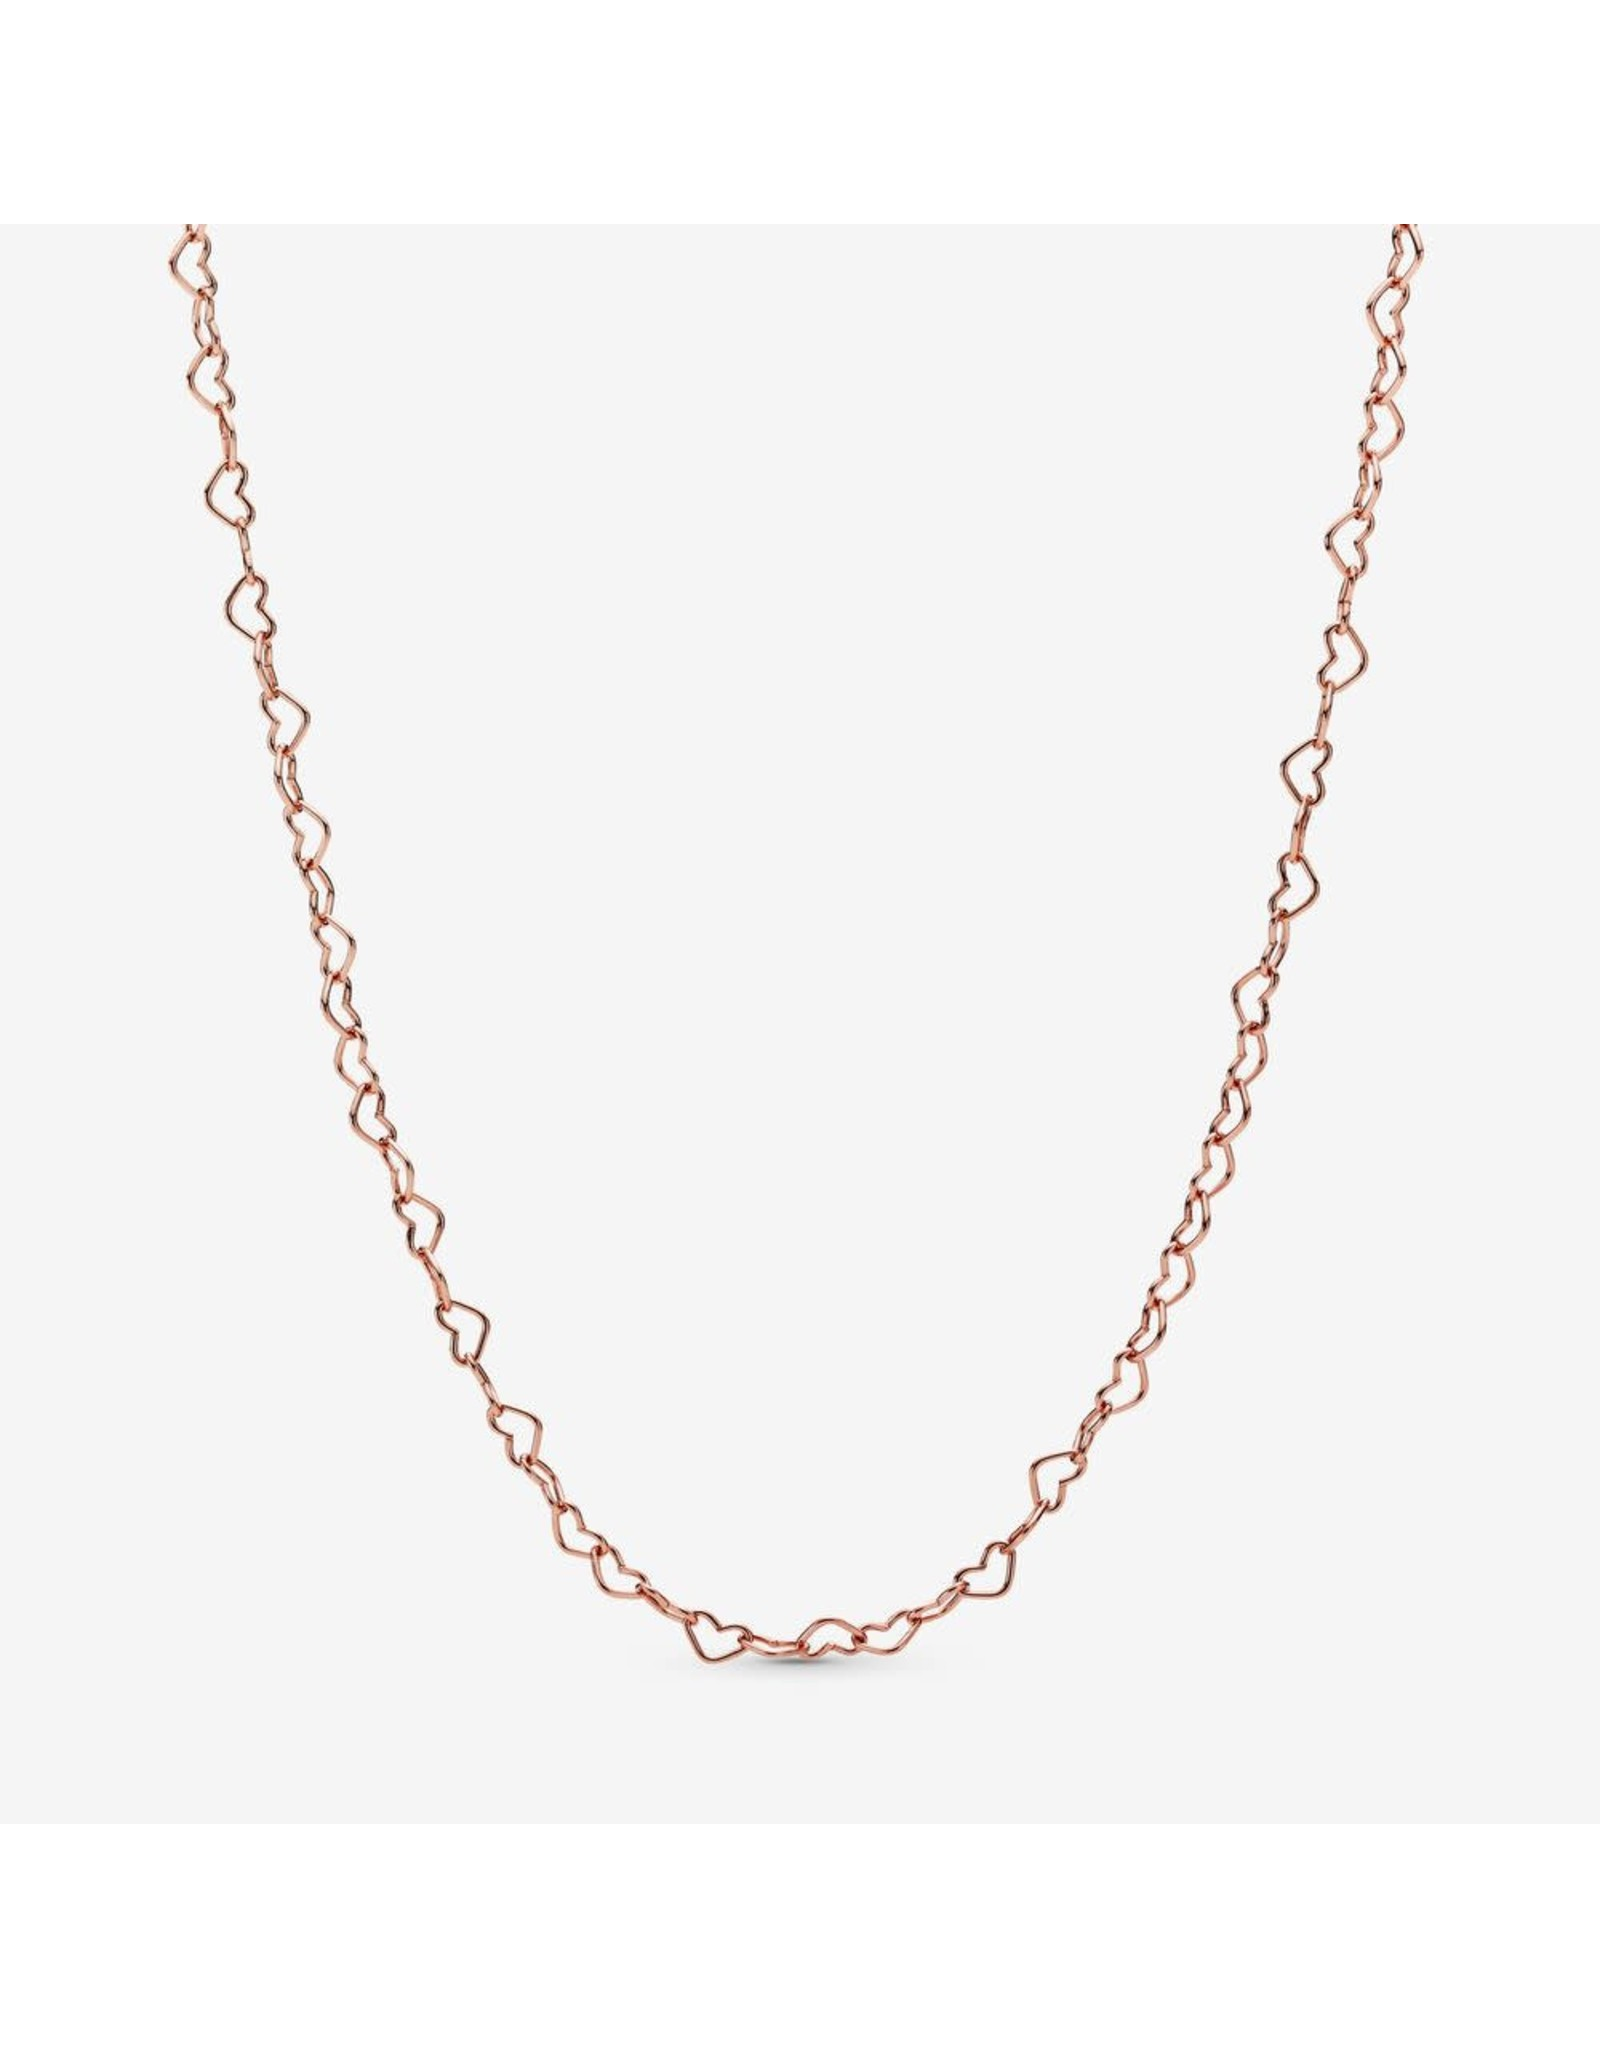 Pandora Pandora Joined Hearts Necklace In Rose Gold, 60 cm And Adjustable To 55 cm nd 50 cm 60 cm